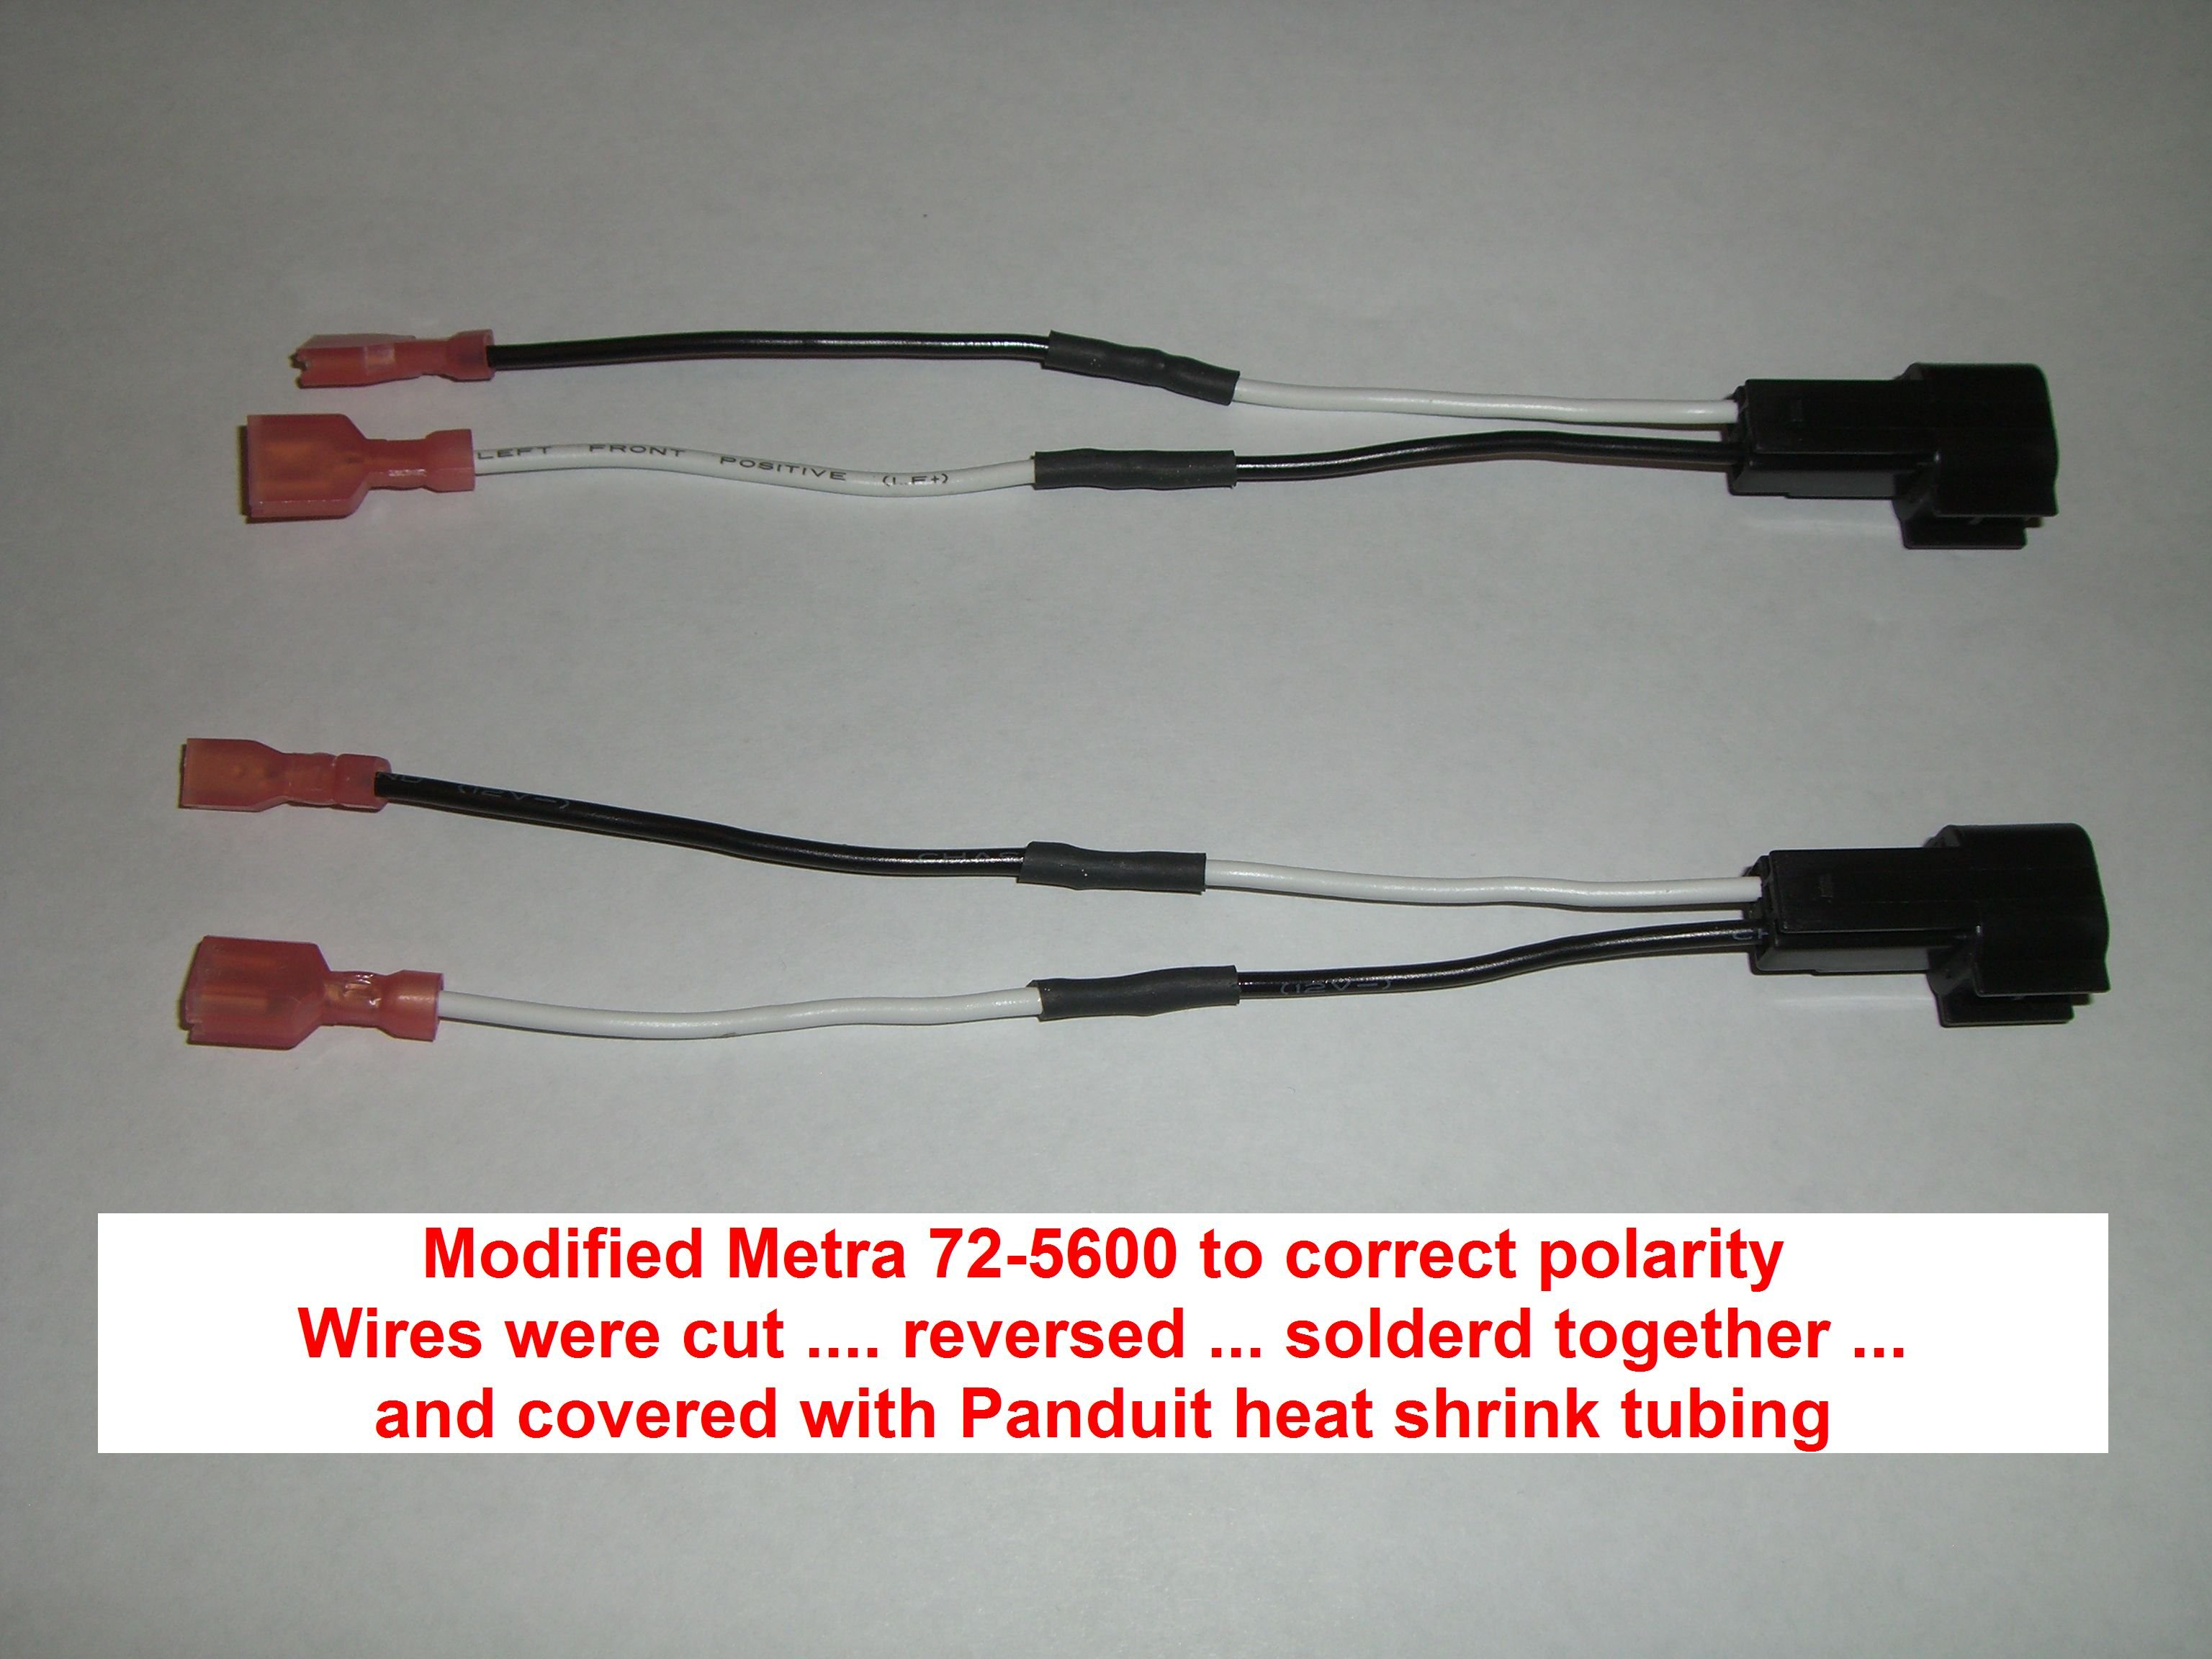 518945d1463602447 metra 72 5600 speaker wire adapter polarity reversed re wired metra 72 5600 speaker wire adapter polarity reversed ford speaker wire harness adapter ford at panicattacktreatment.co